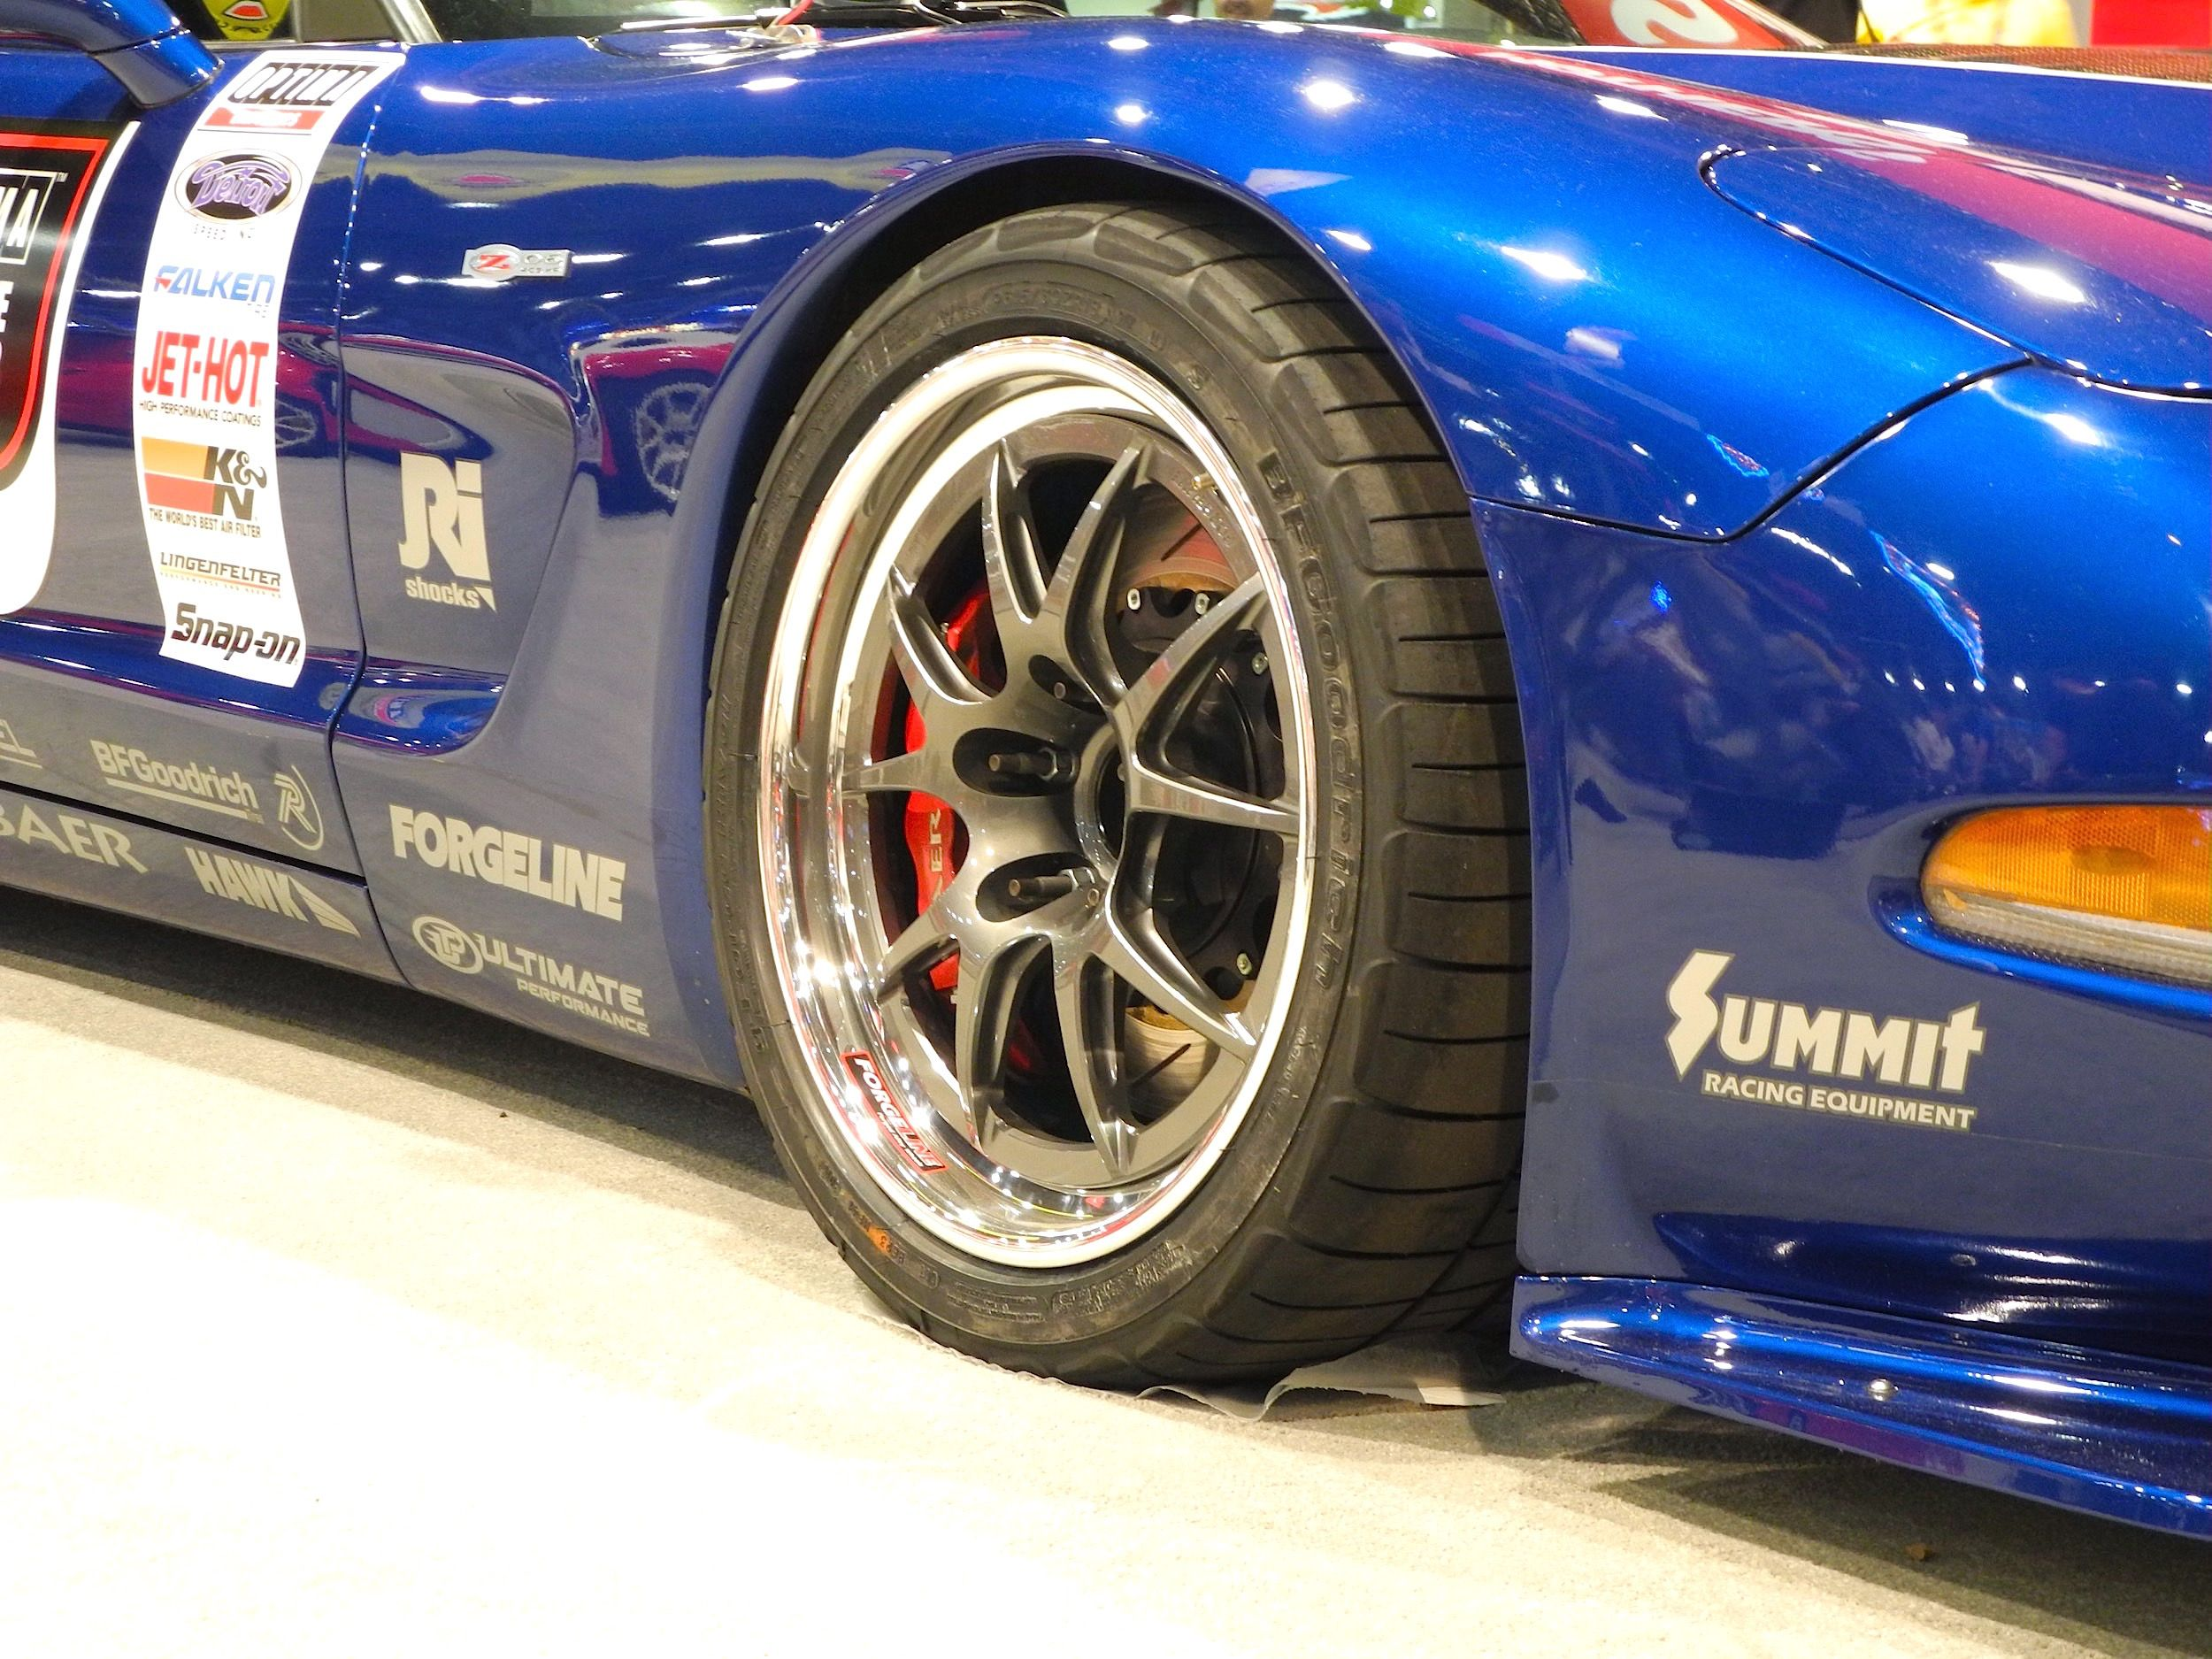 Danny Popp S Ousci Winning C5 Z06 At Champion S Corner In The Optima Batteries Booth At The 2015 Sema Show This Lingenfelter Rocket Ride Corvette Sema 2015